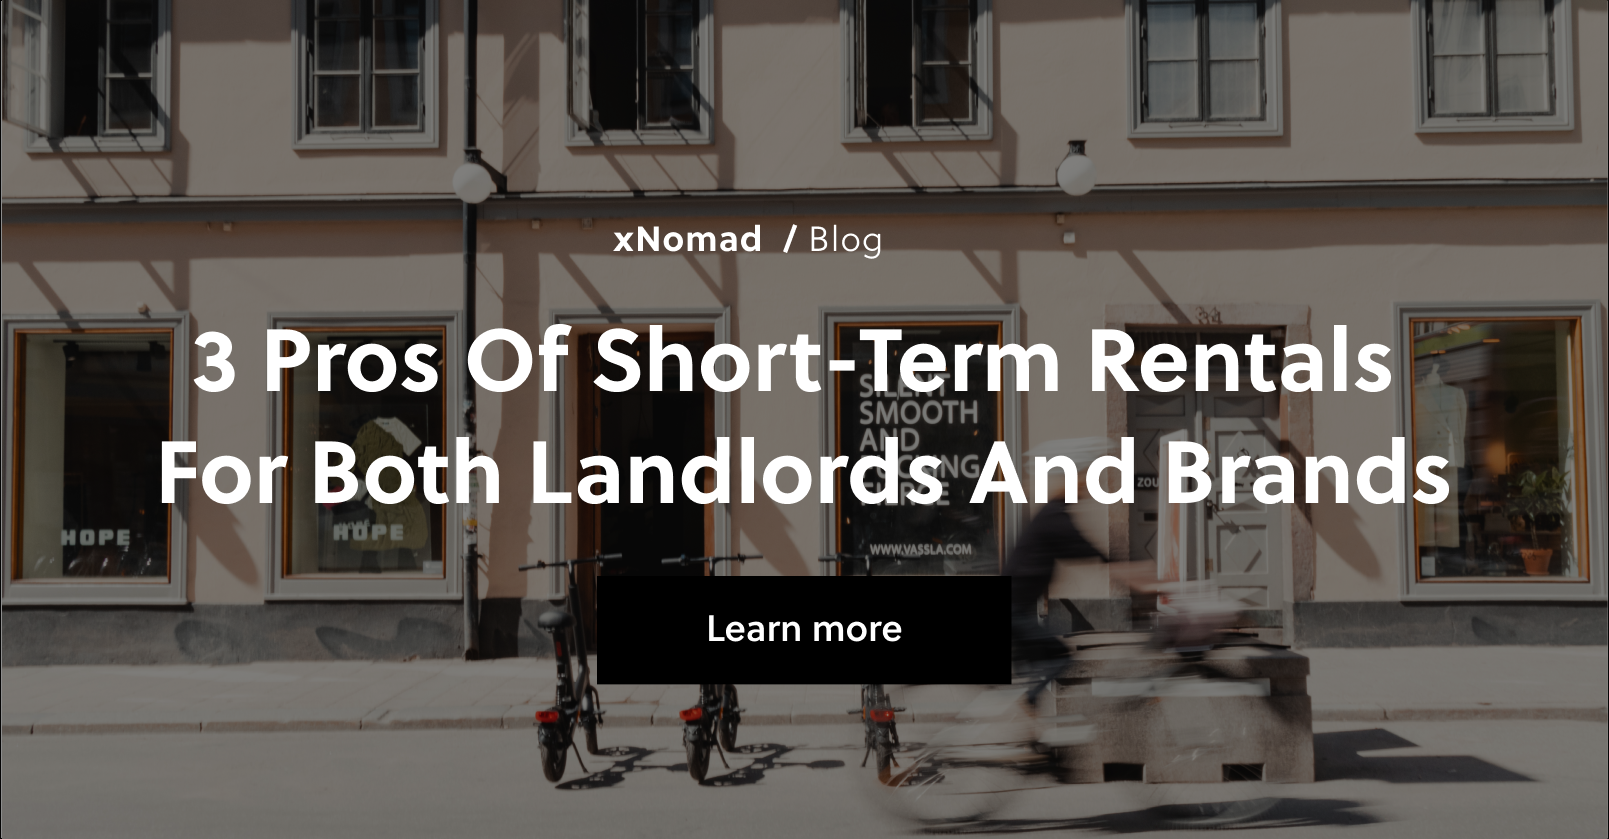 3 Pros of Short-term Rentals - for Both Landlords and Brands